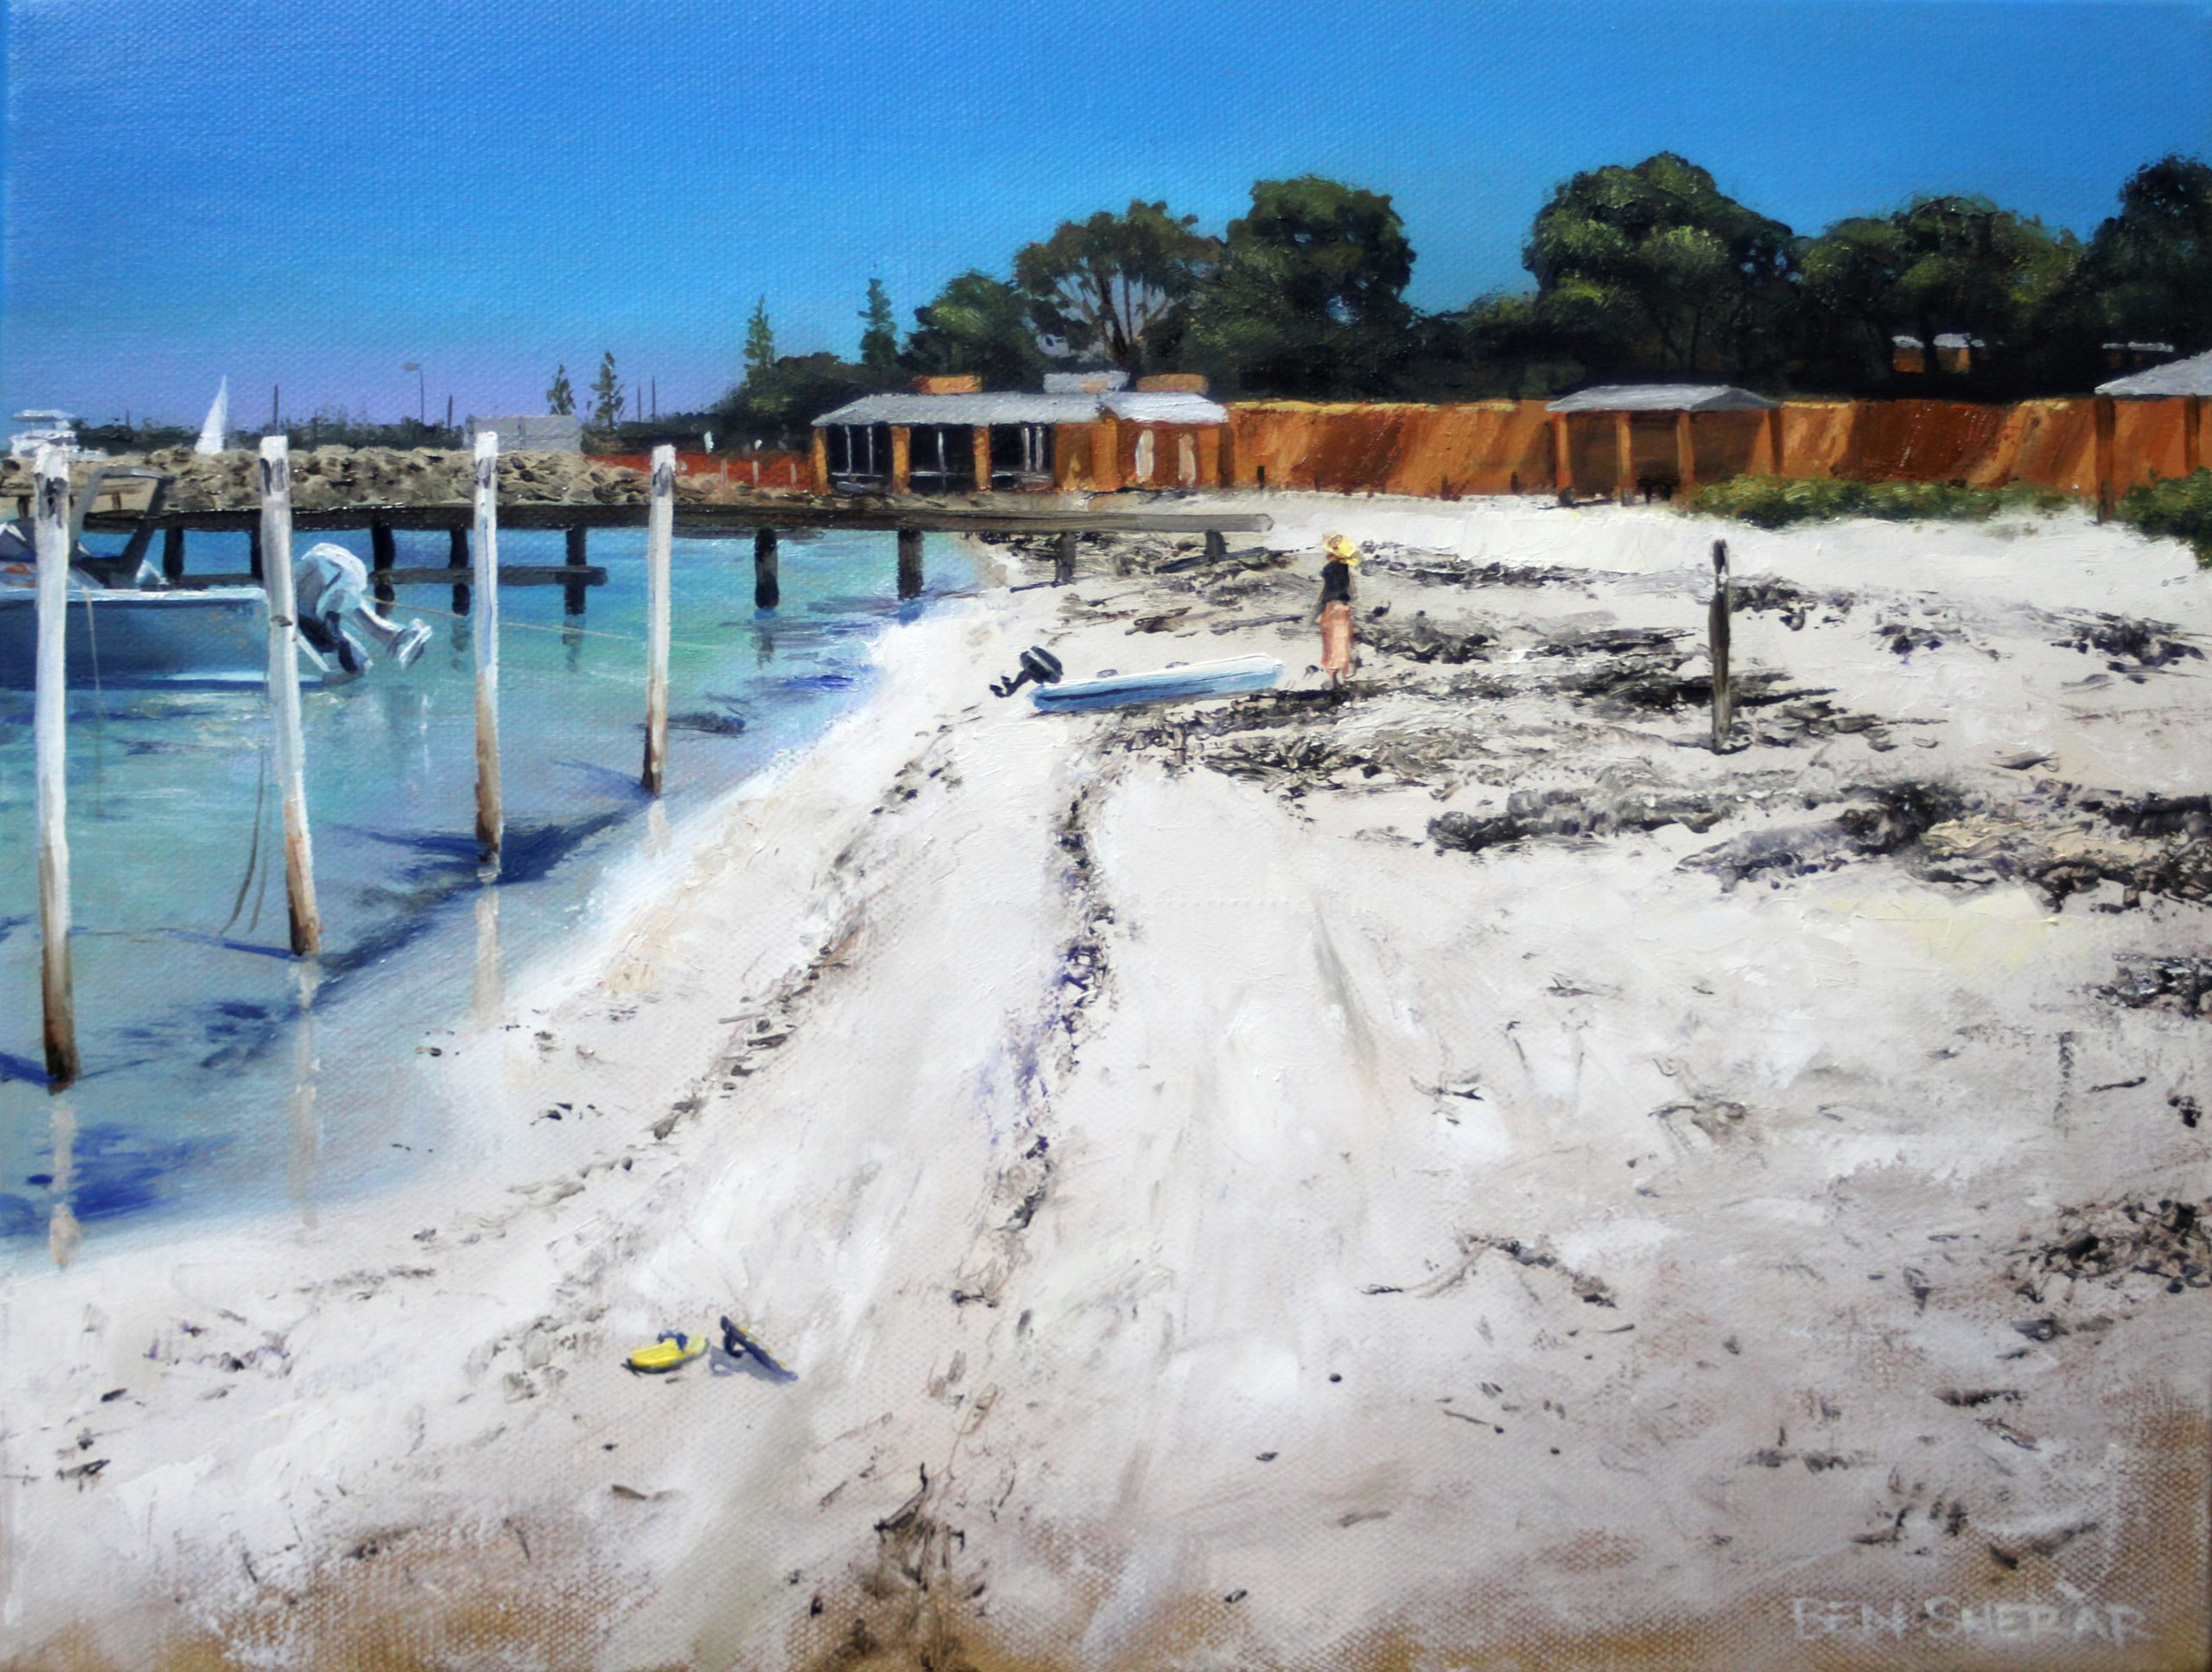 An original oil painting by Artist Ben Sherar of Thomson Bay at Rottnest Island